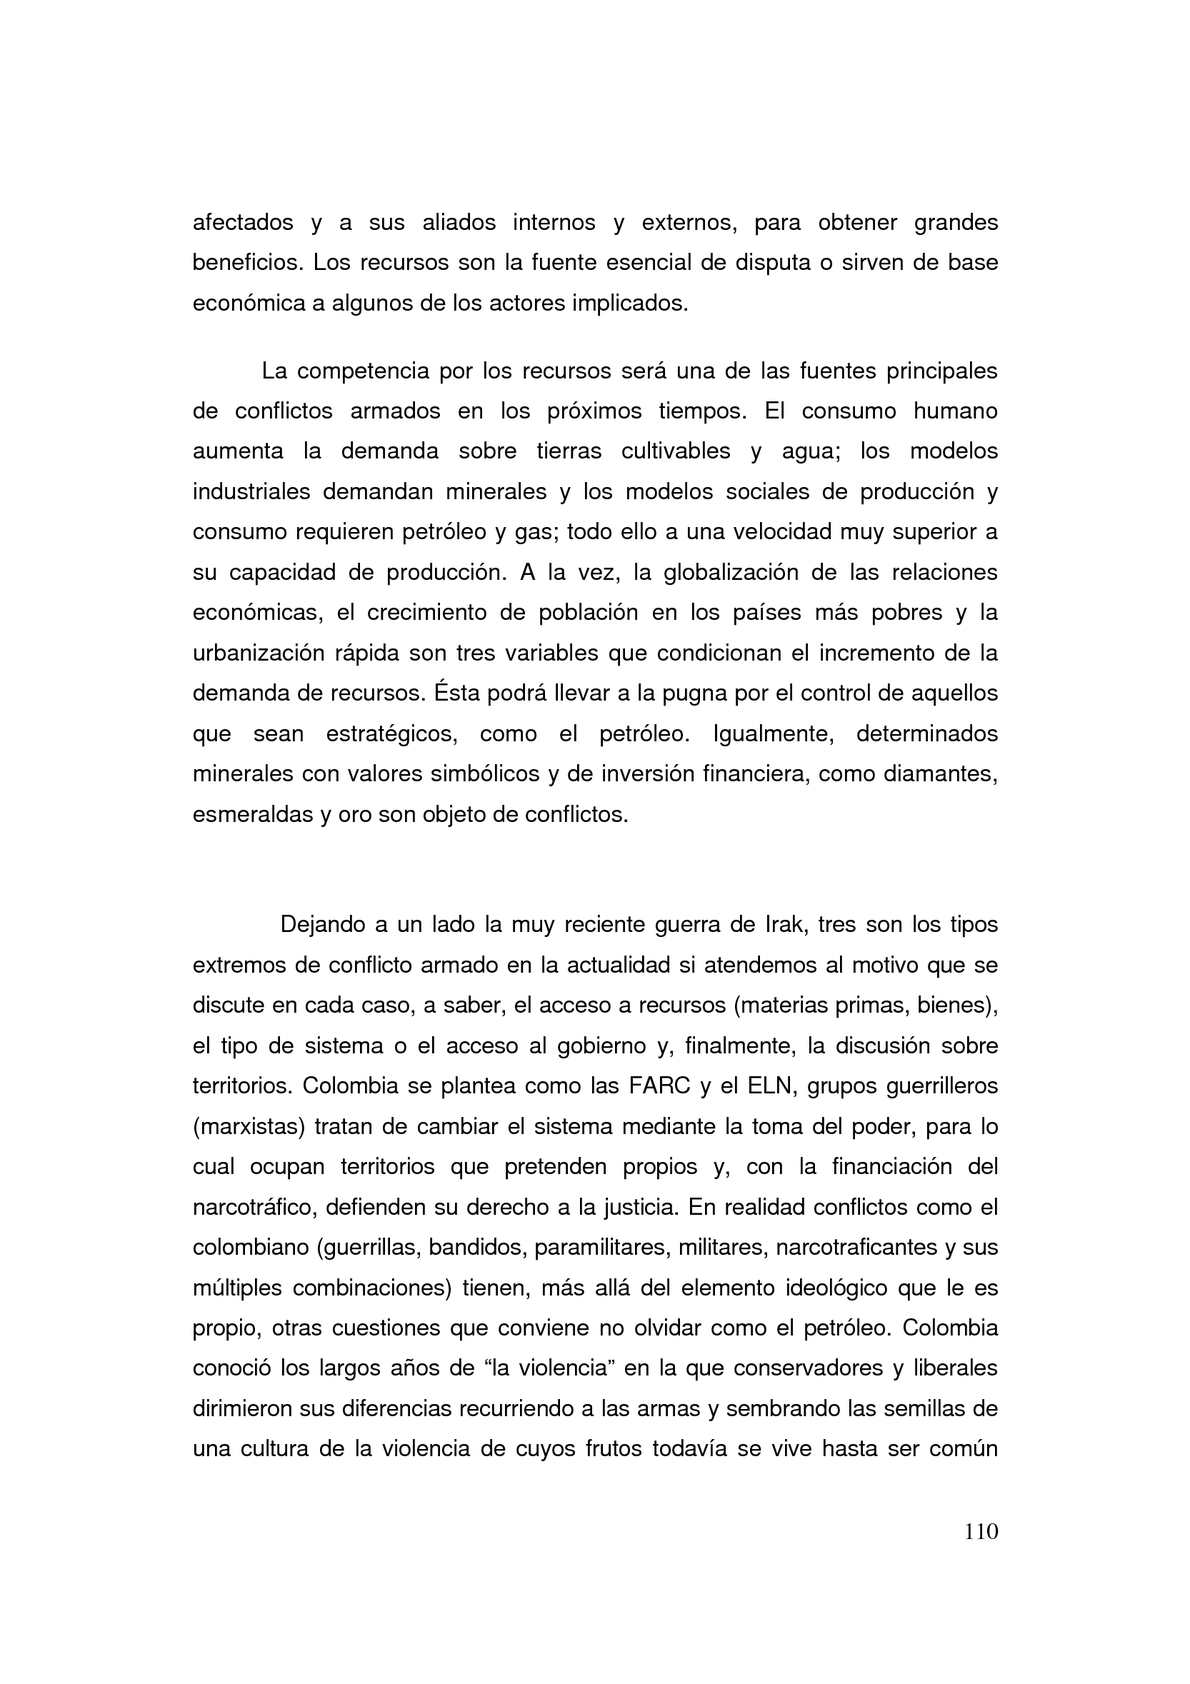 Page 111